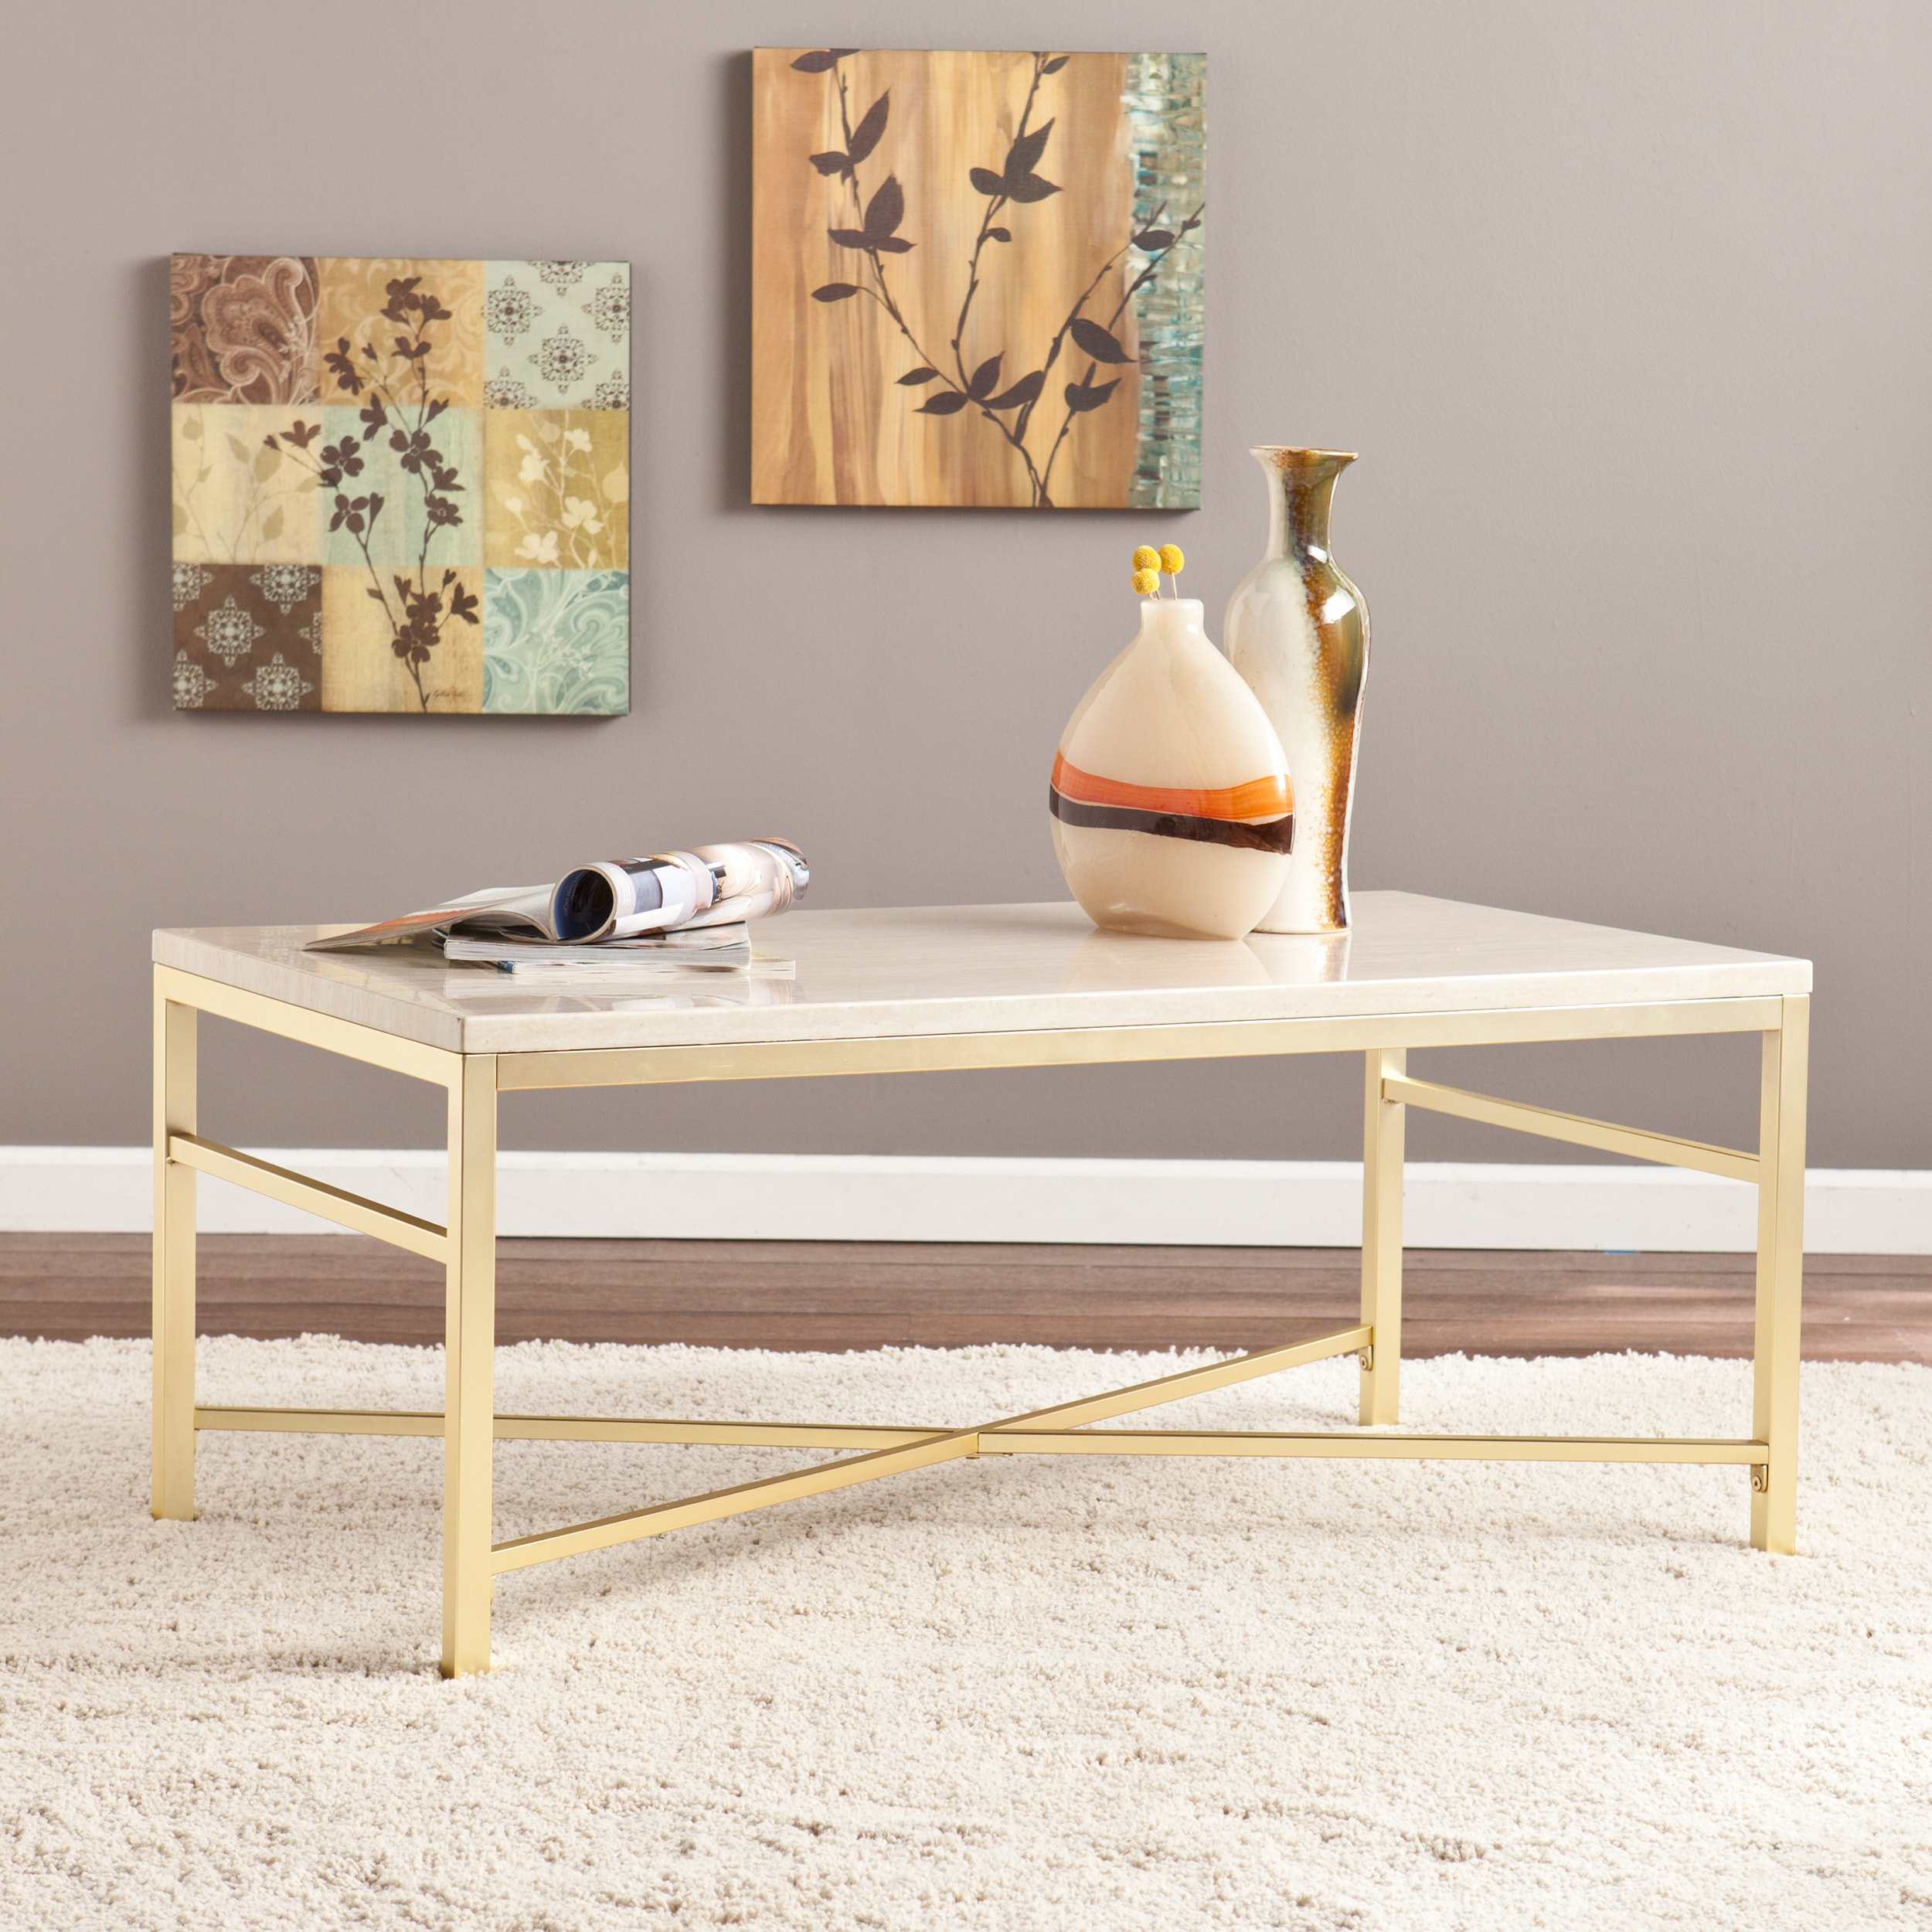 Silver Orchid Grant Faux Stone Coffee Tail Table Free Shipping Today 21285258